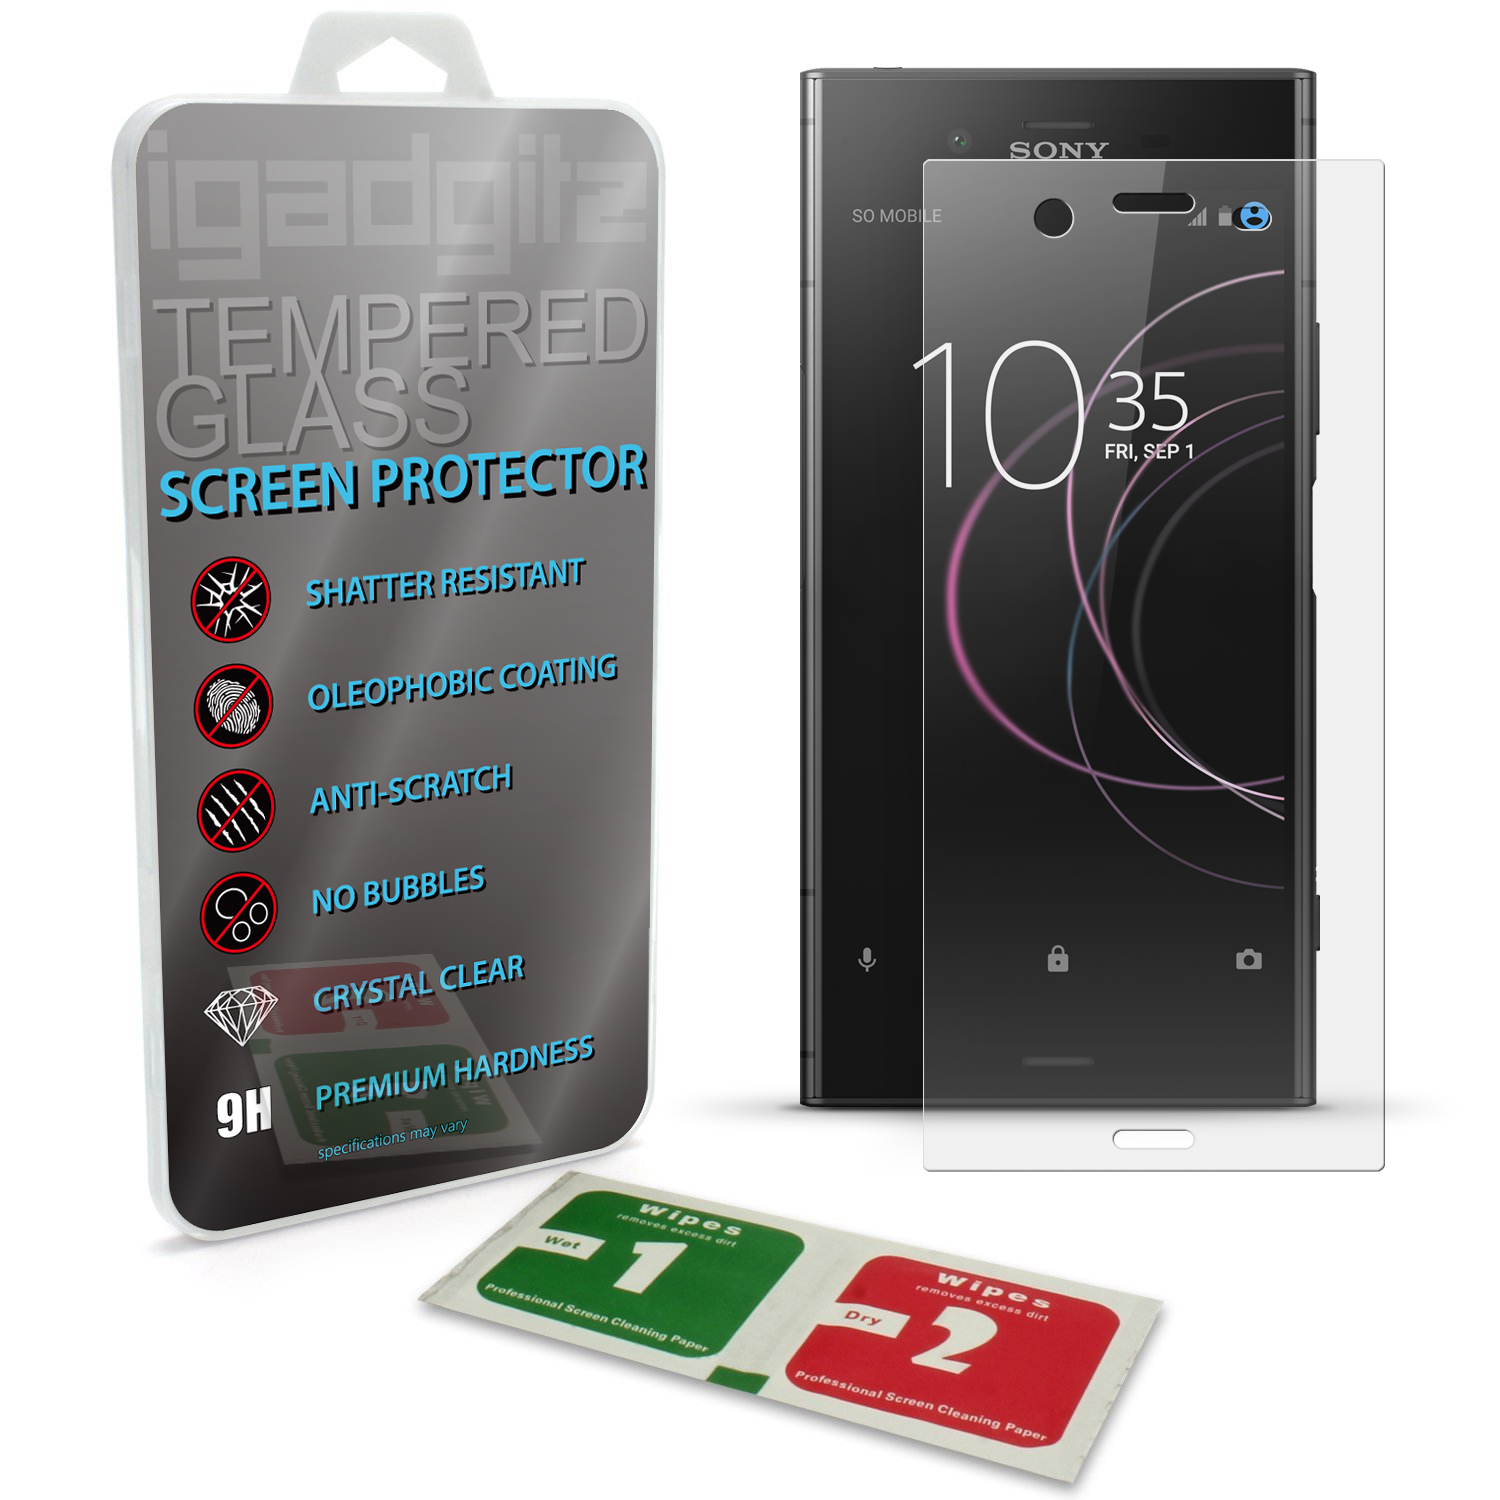 iGadgitz Tempered Glass Screen Protector for Sony Xperia XZ1 Shatterproof 9H Hardness Anti Scratch